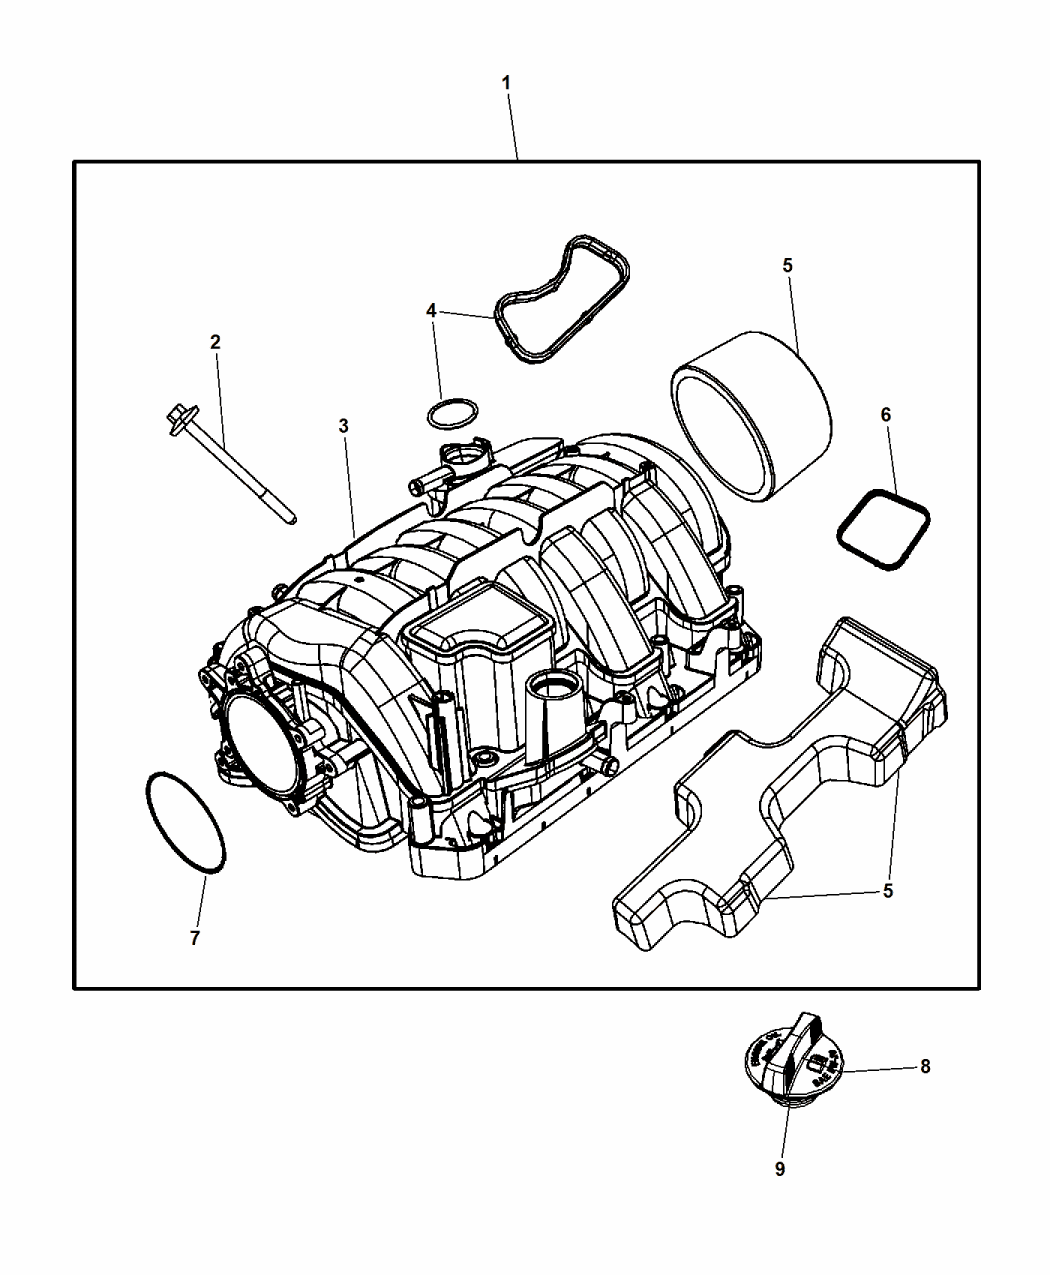 Dodge Challenger Drawing At Free For Personal Use Hellcat Engine Diagram 1050x1275 Intake Manifold 2015 Mopar Parts Giant